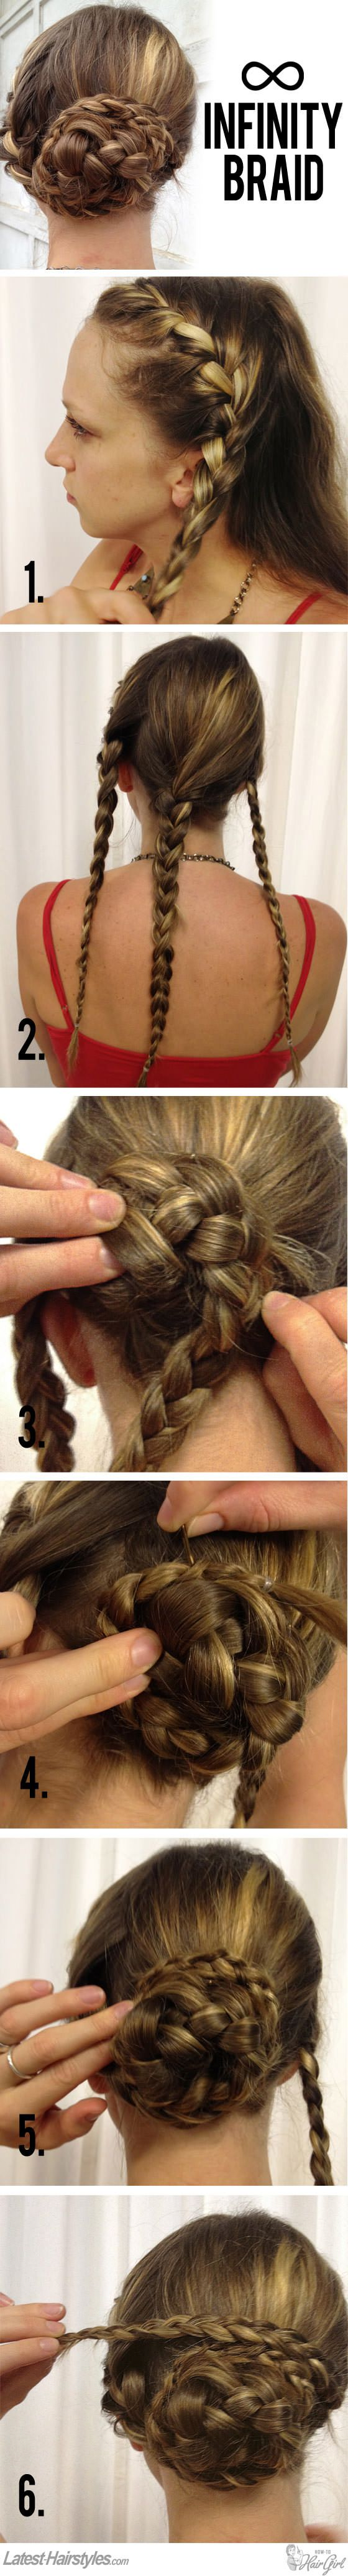 best images about hairstyles on pinterest formal wedding my